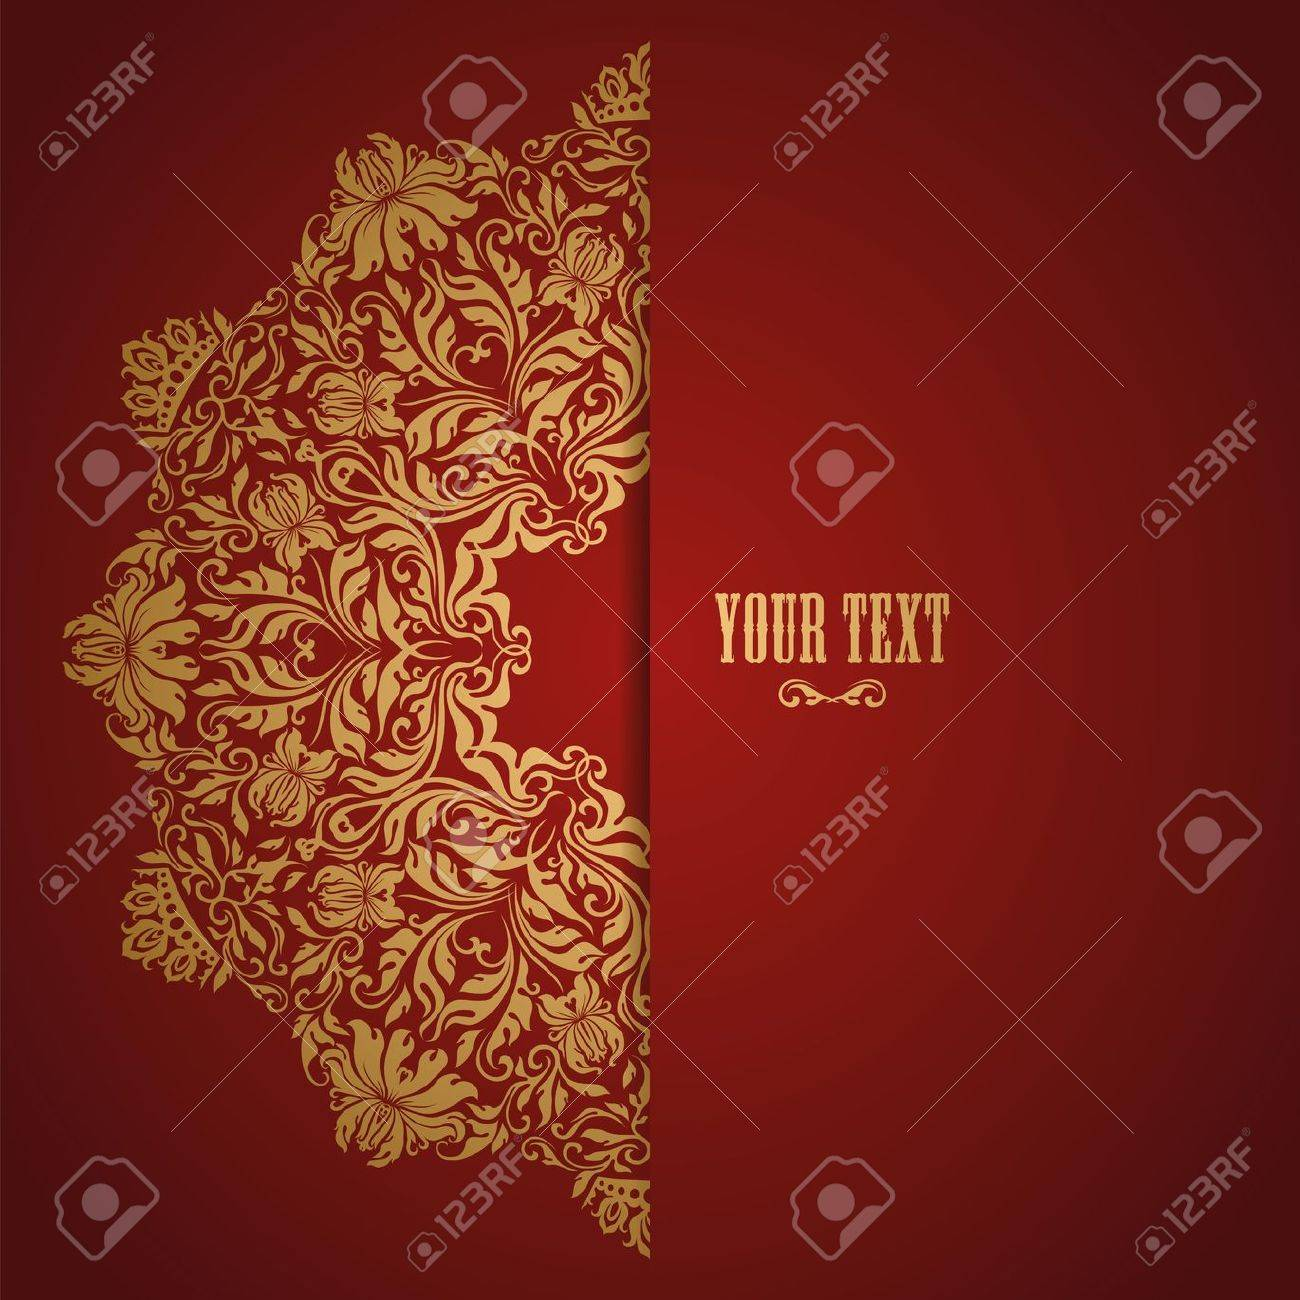 Elegant background with lace ornament and place for text. Floral elements, ornate background. 10. Stock Vector - 17623671